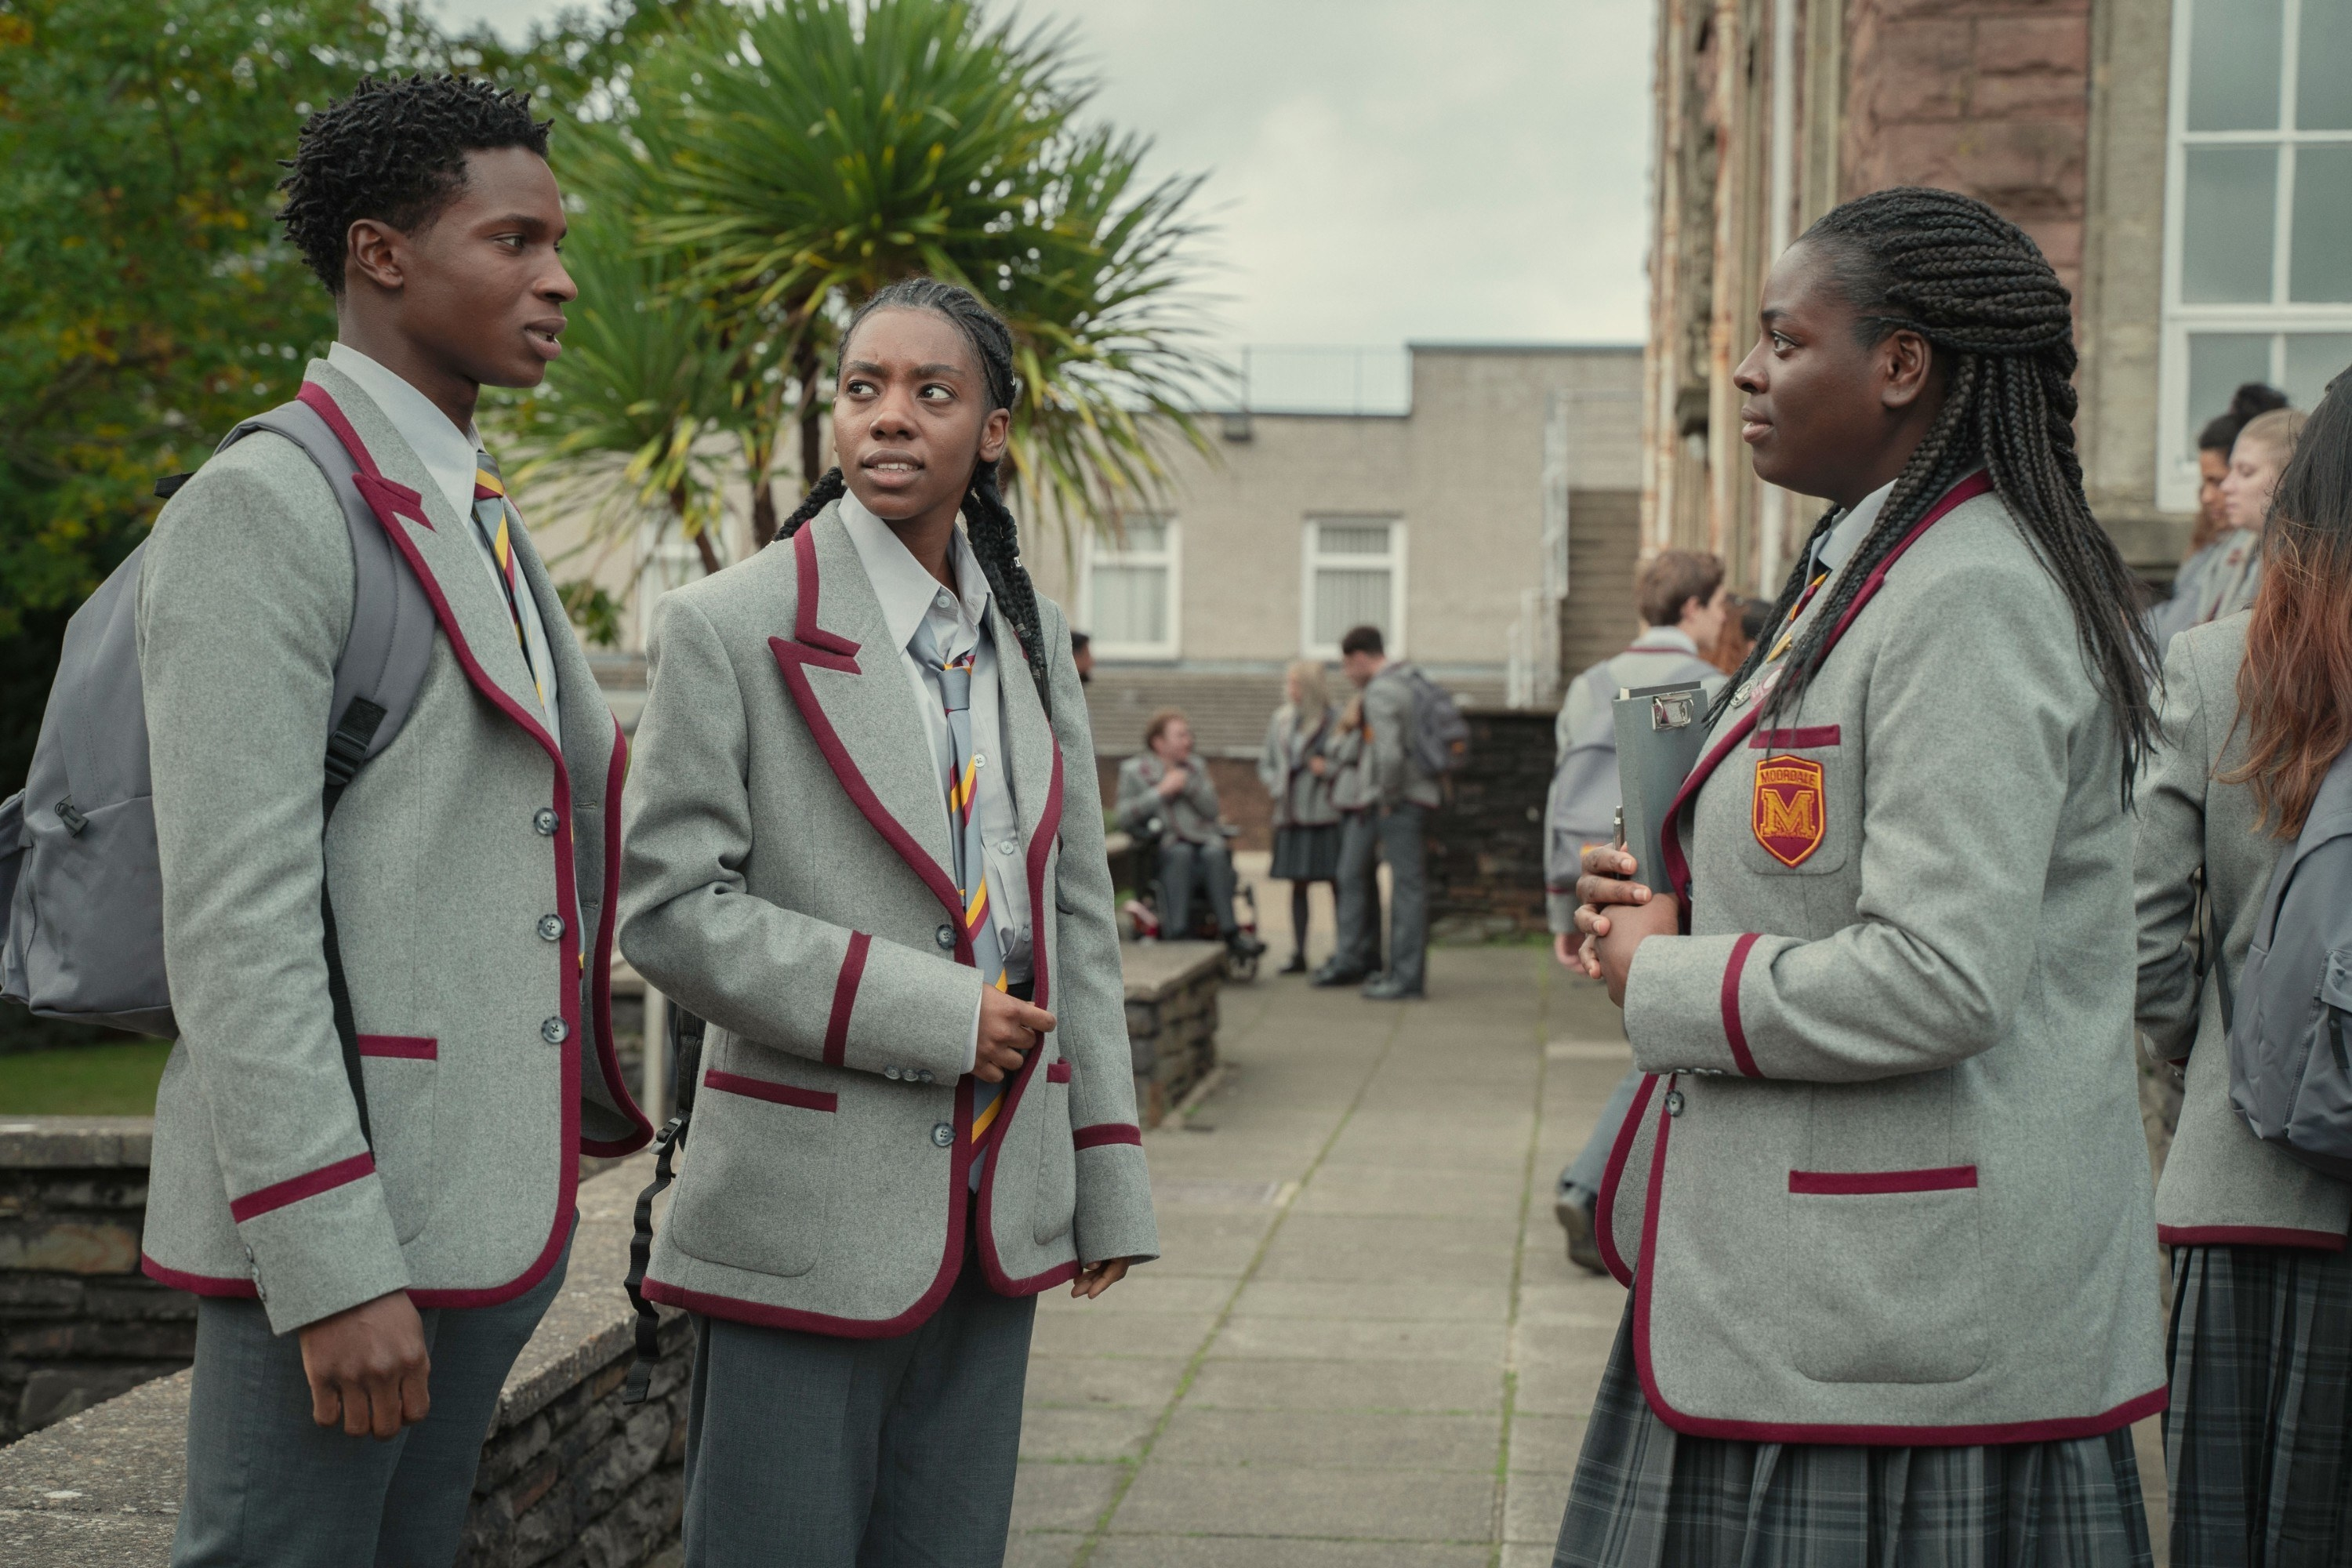 students in long grey blazers with red liner